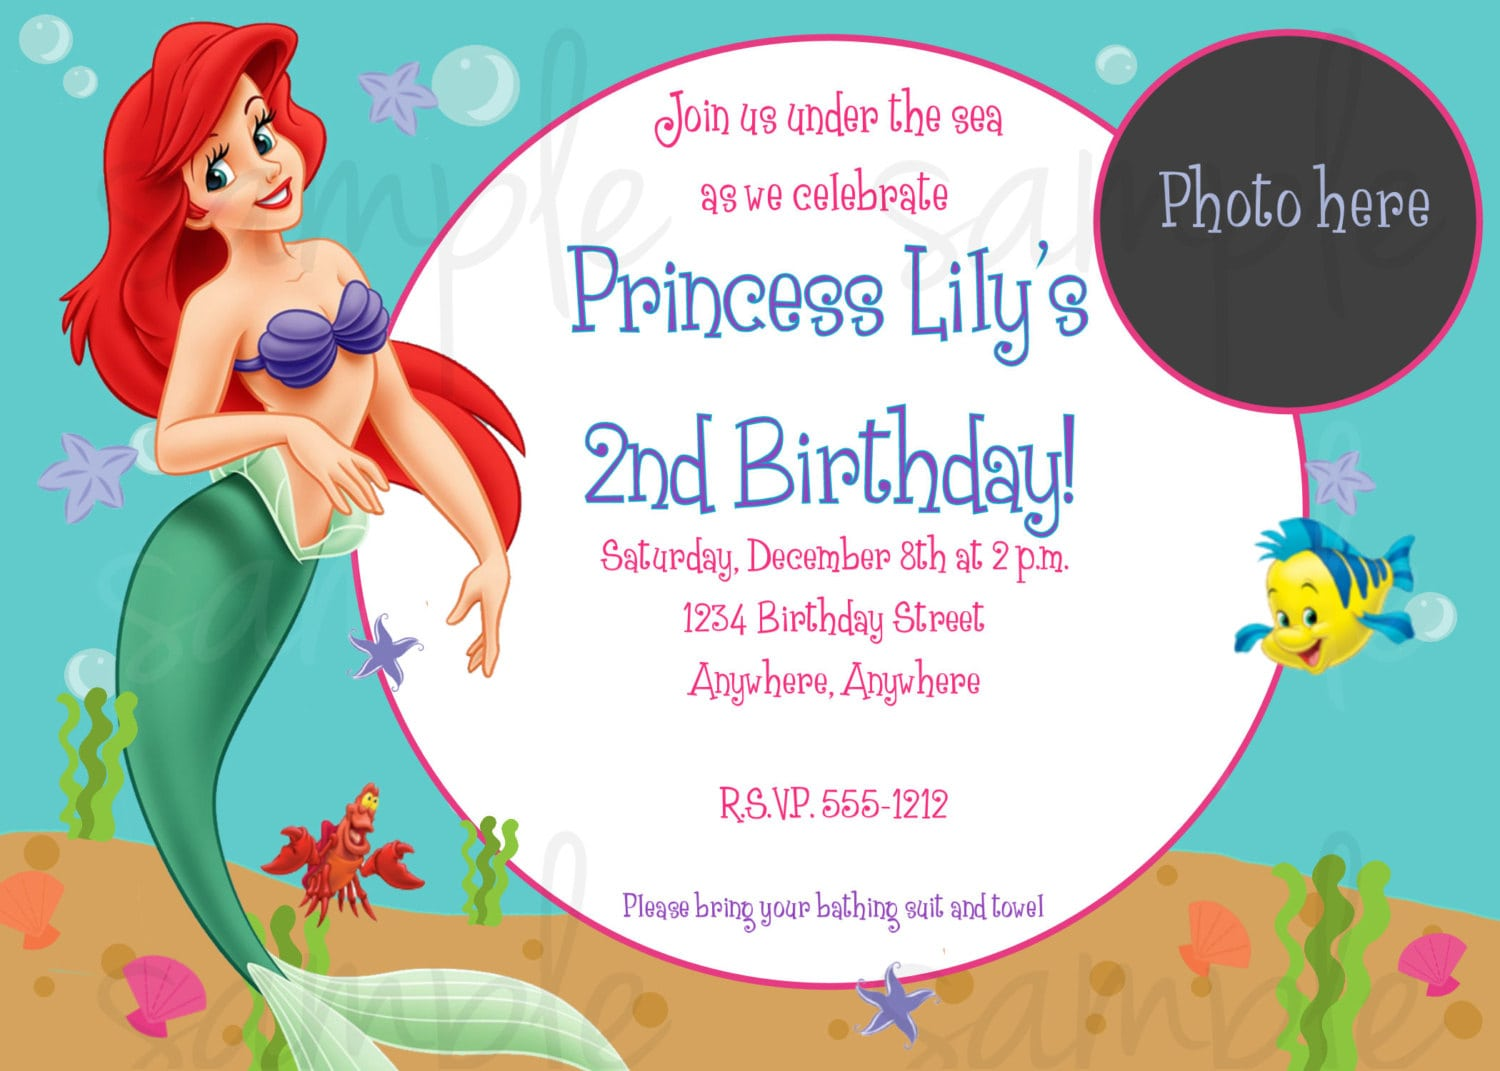 11Th Birthday Invitation Wording with beautiful invitations example